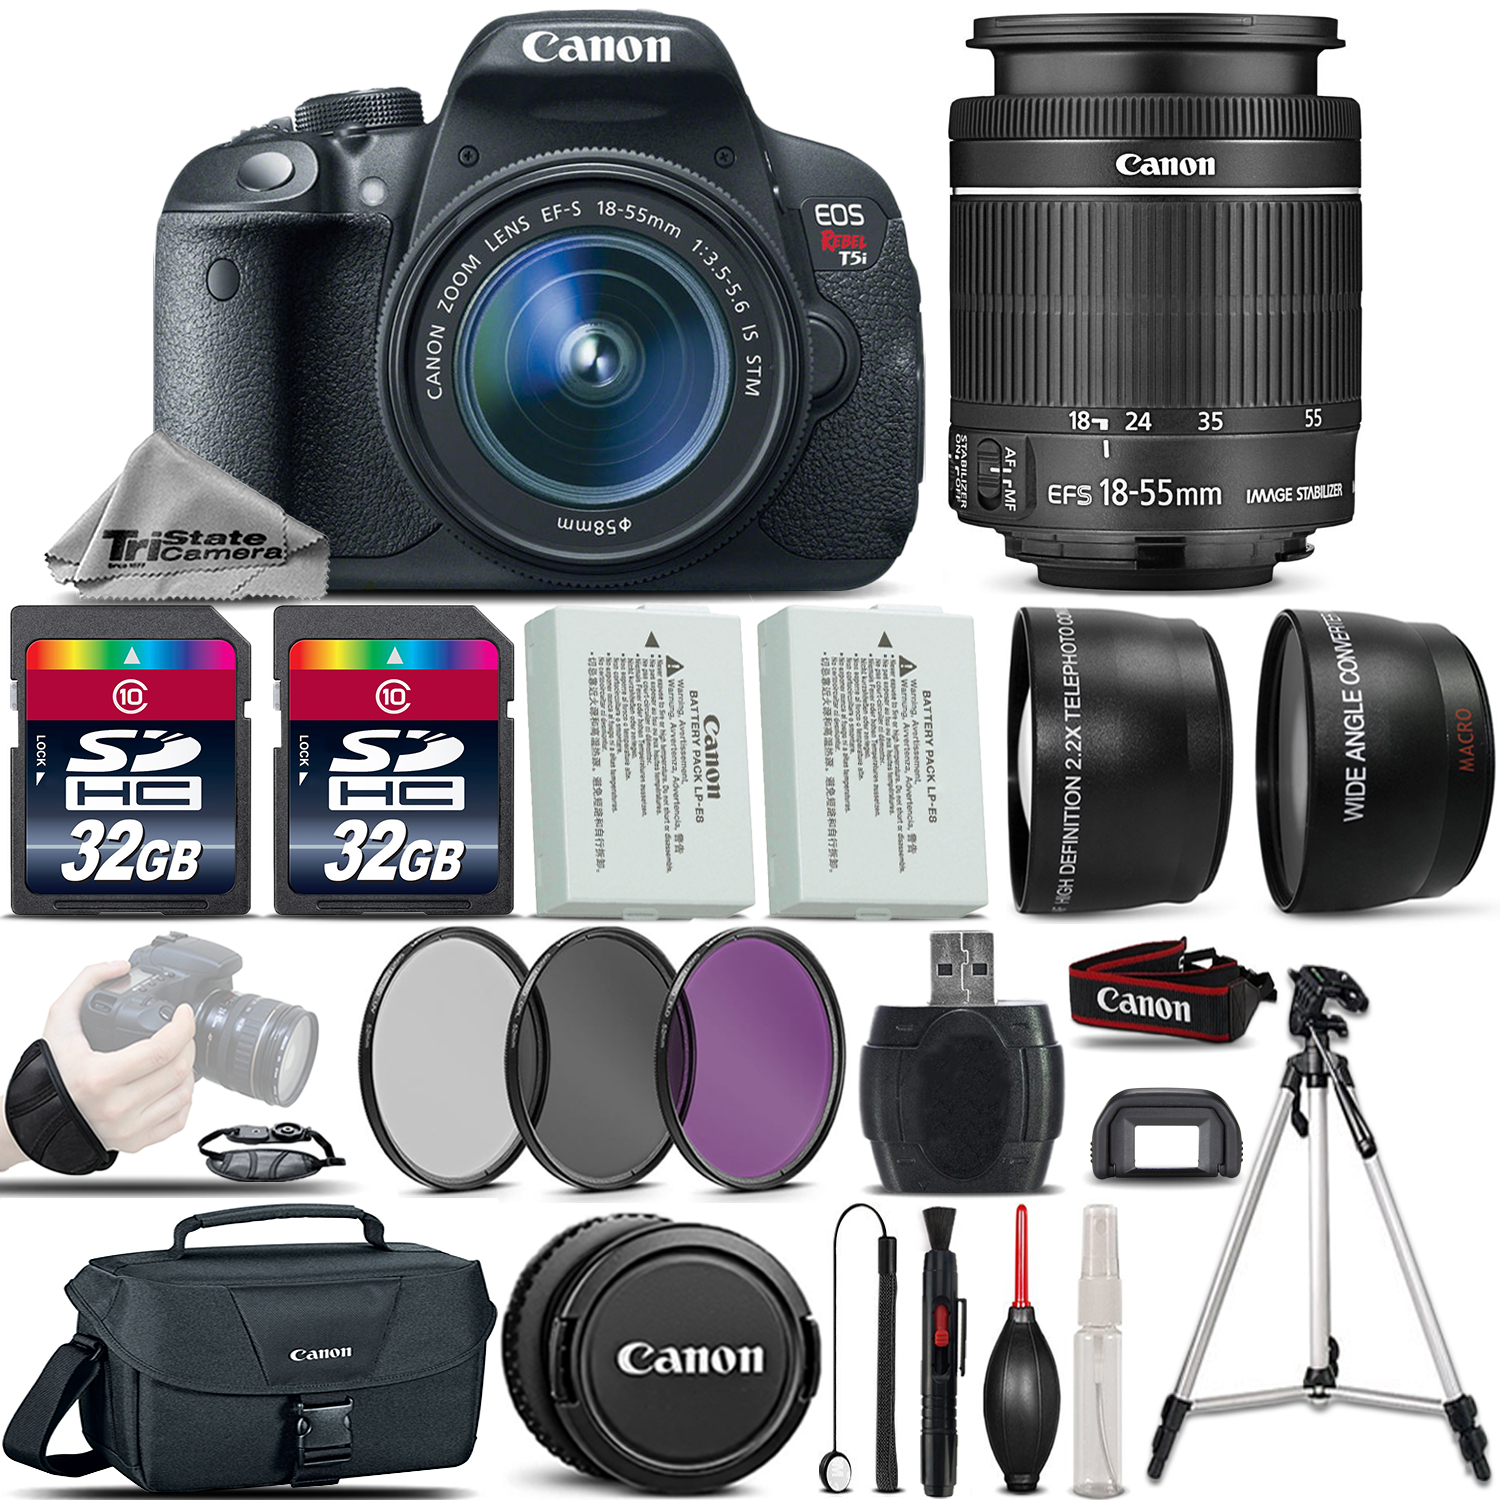 EOS Rebel T5i SLR Camera 700D + 18-55mm IS + EXT BAT + Canon Case + 64GB *FREE SHIPPING*